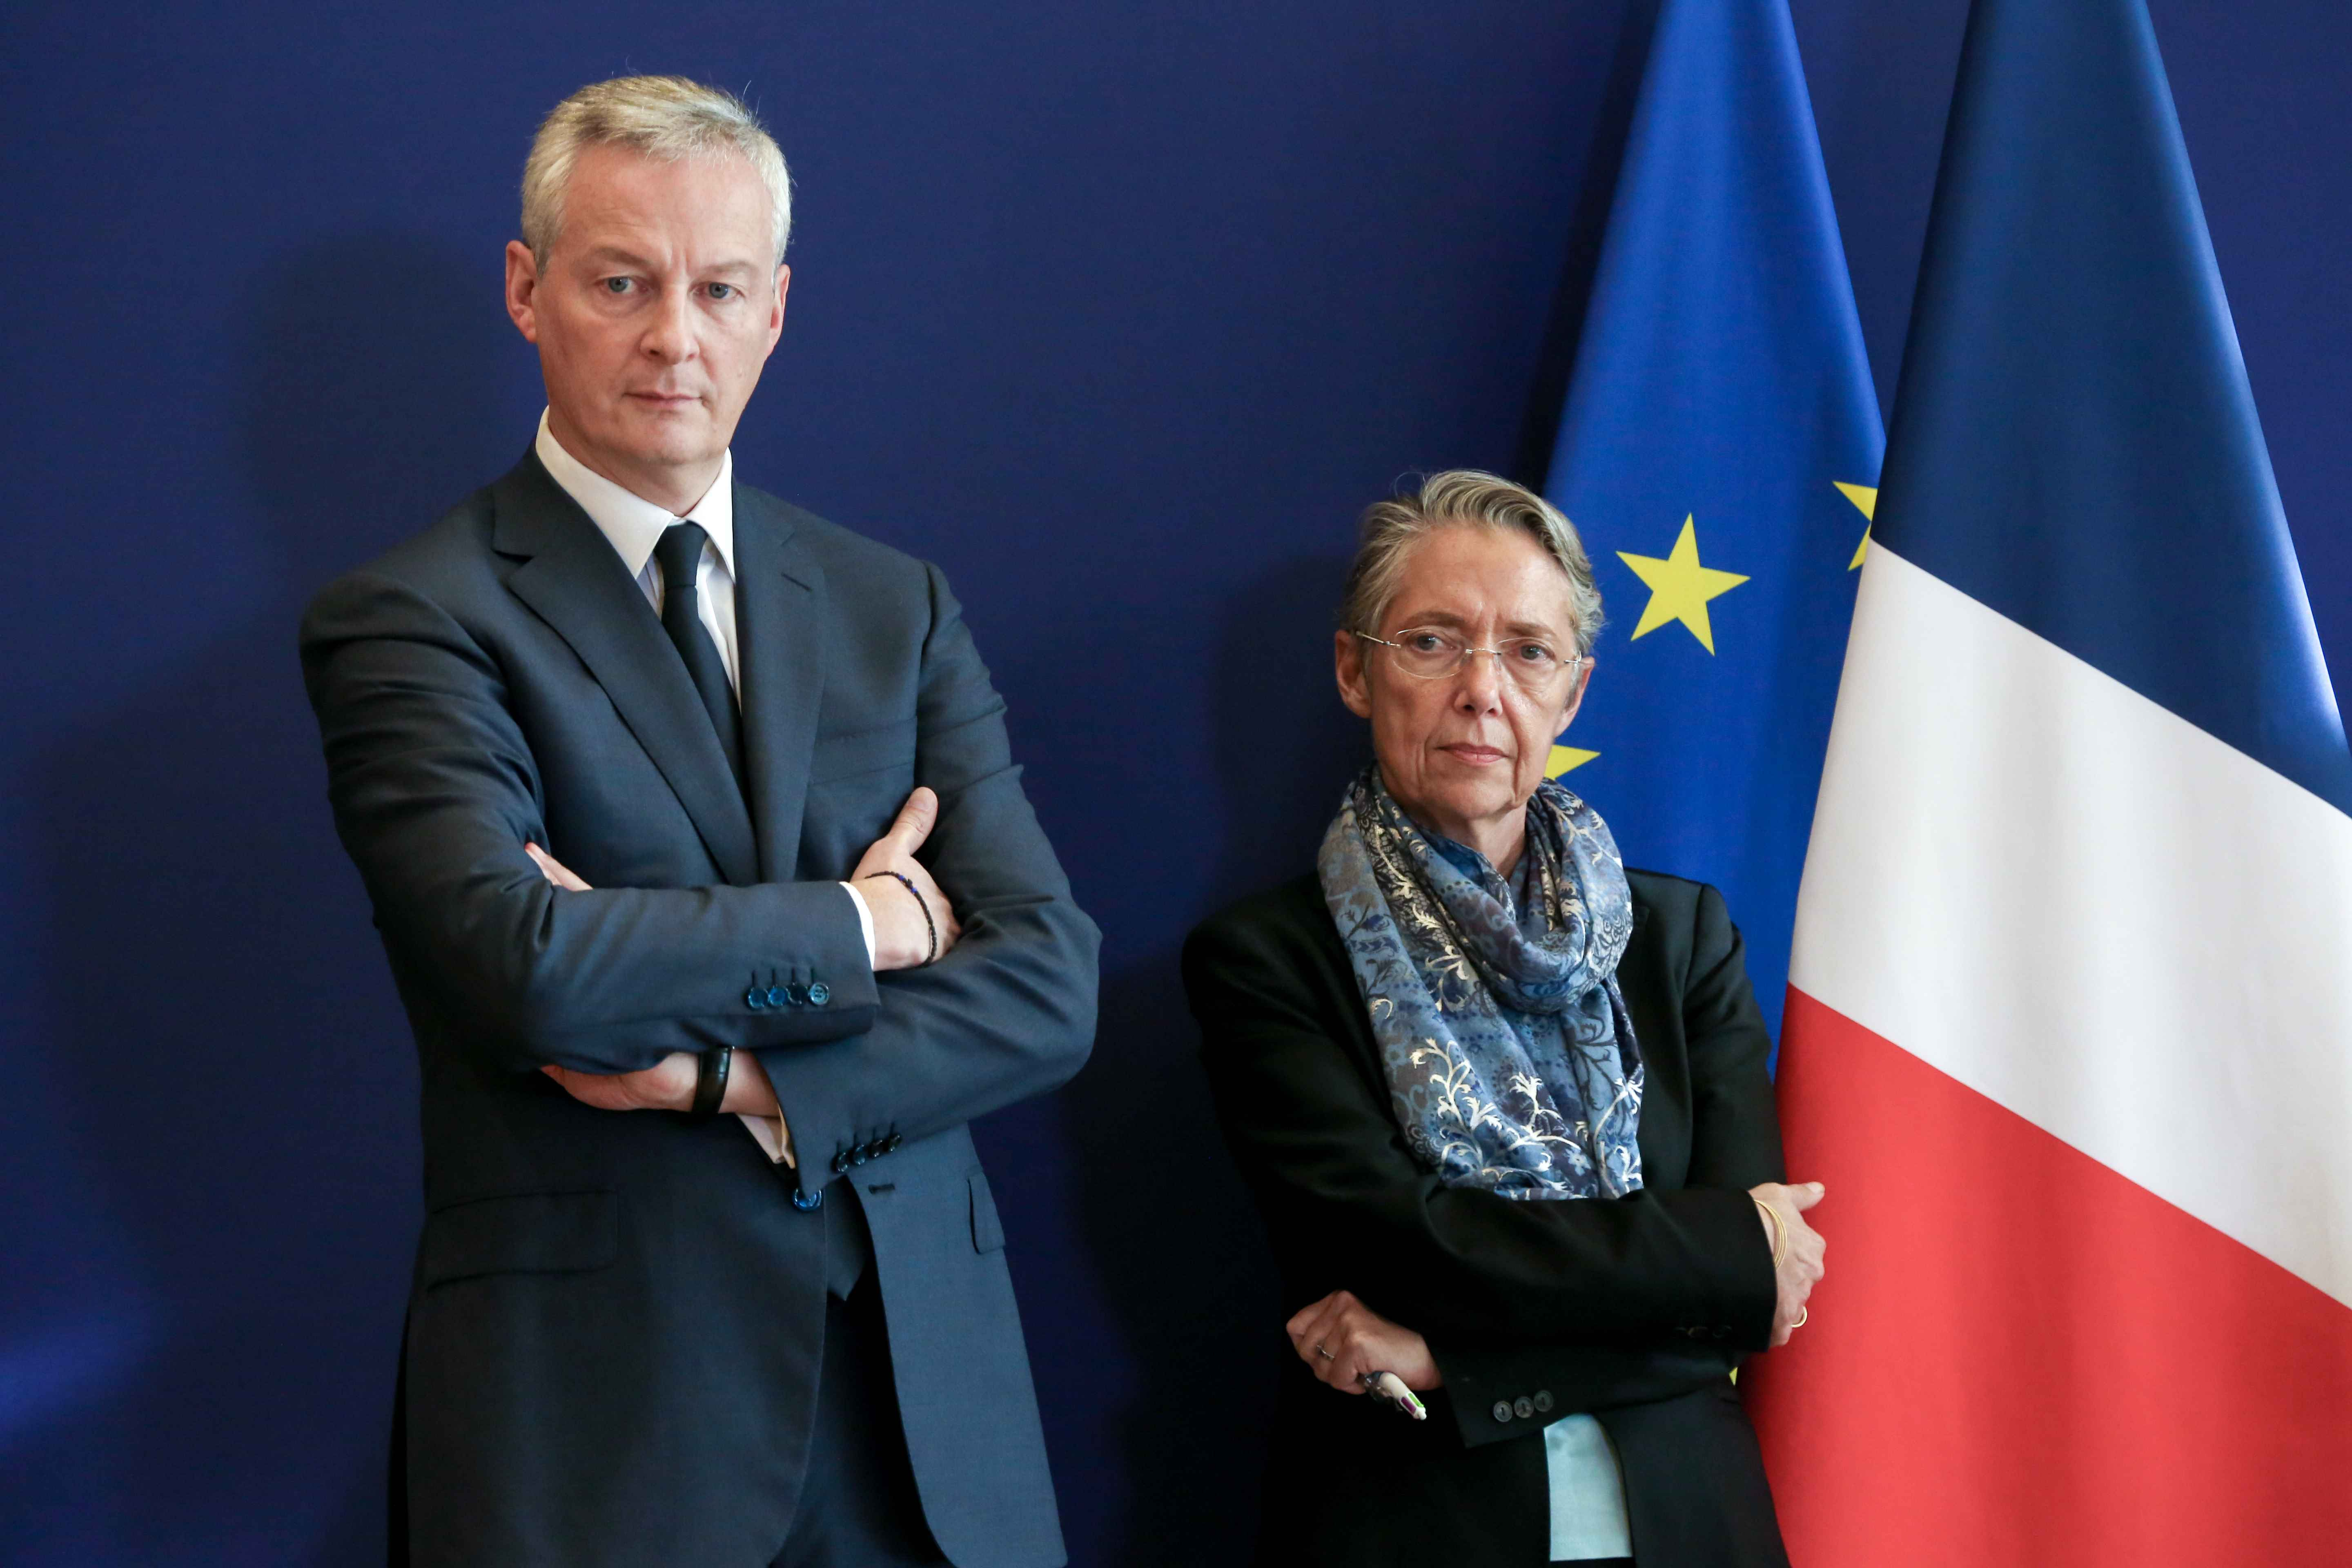 (From L to R) French Finance and Economy Minister Bruno Le Maire and French Minister for the Ecological and Inclusive Transition Elisabeth Borne give a press conference to present a report concerning the construction of the EPR at the Flamanville nuclear p